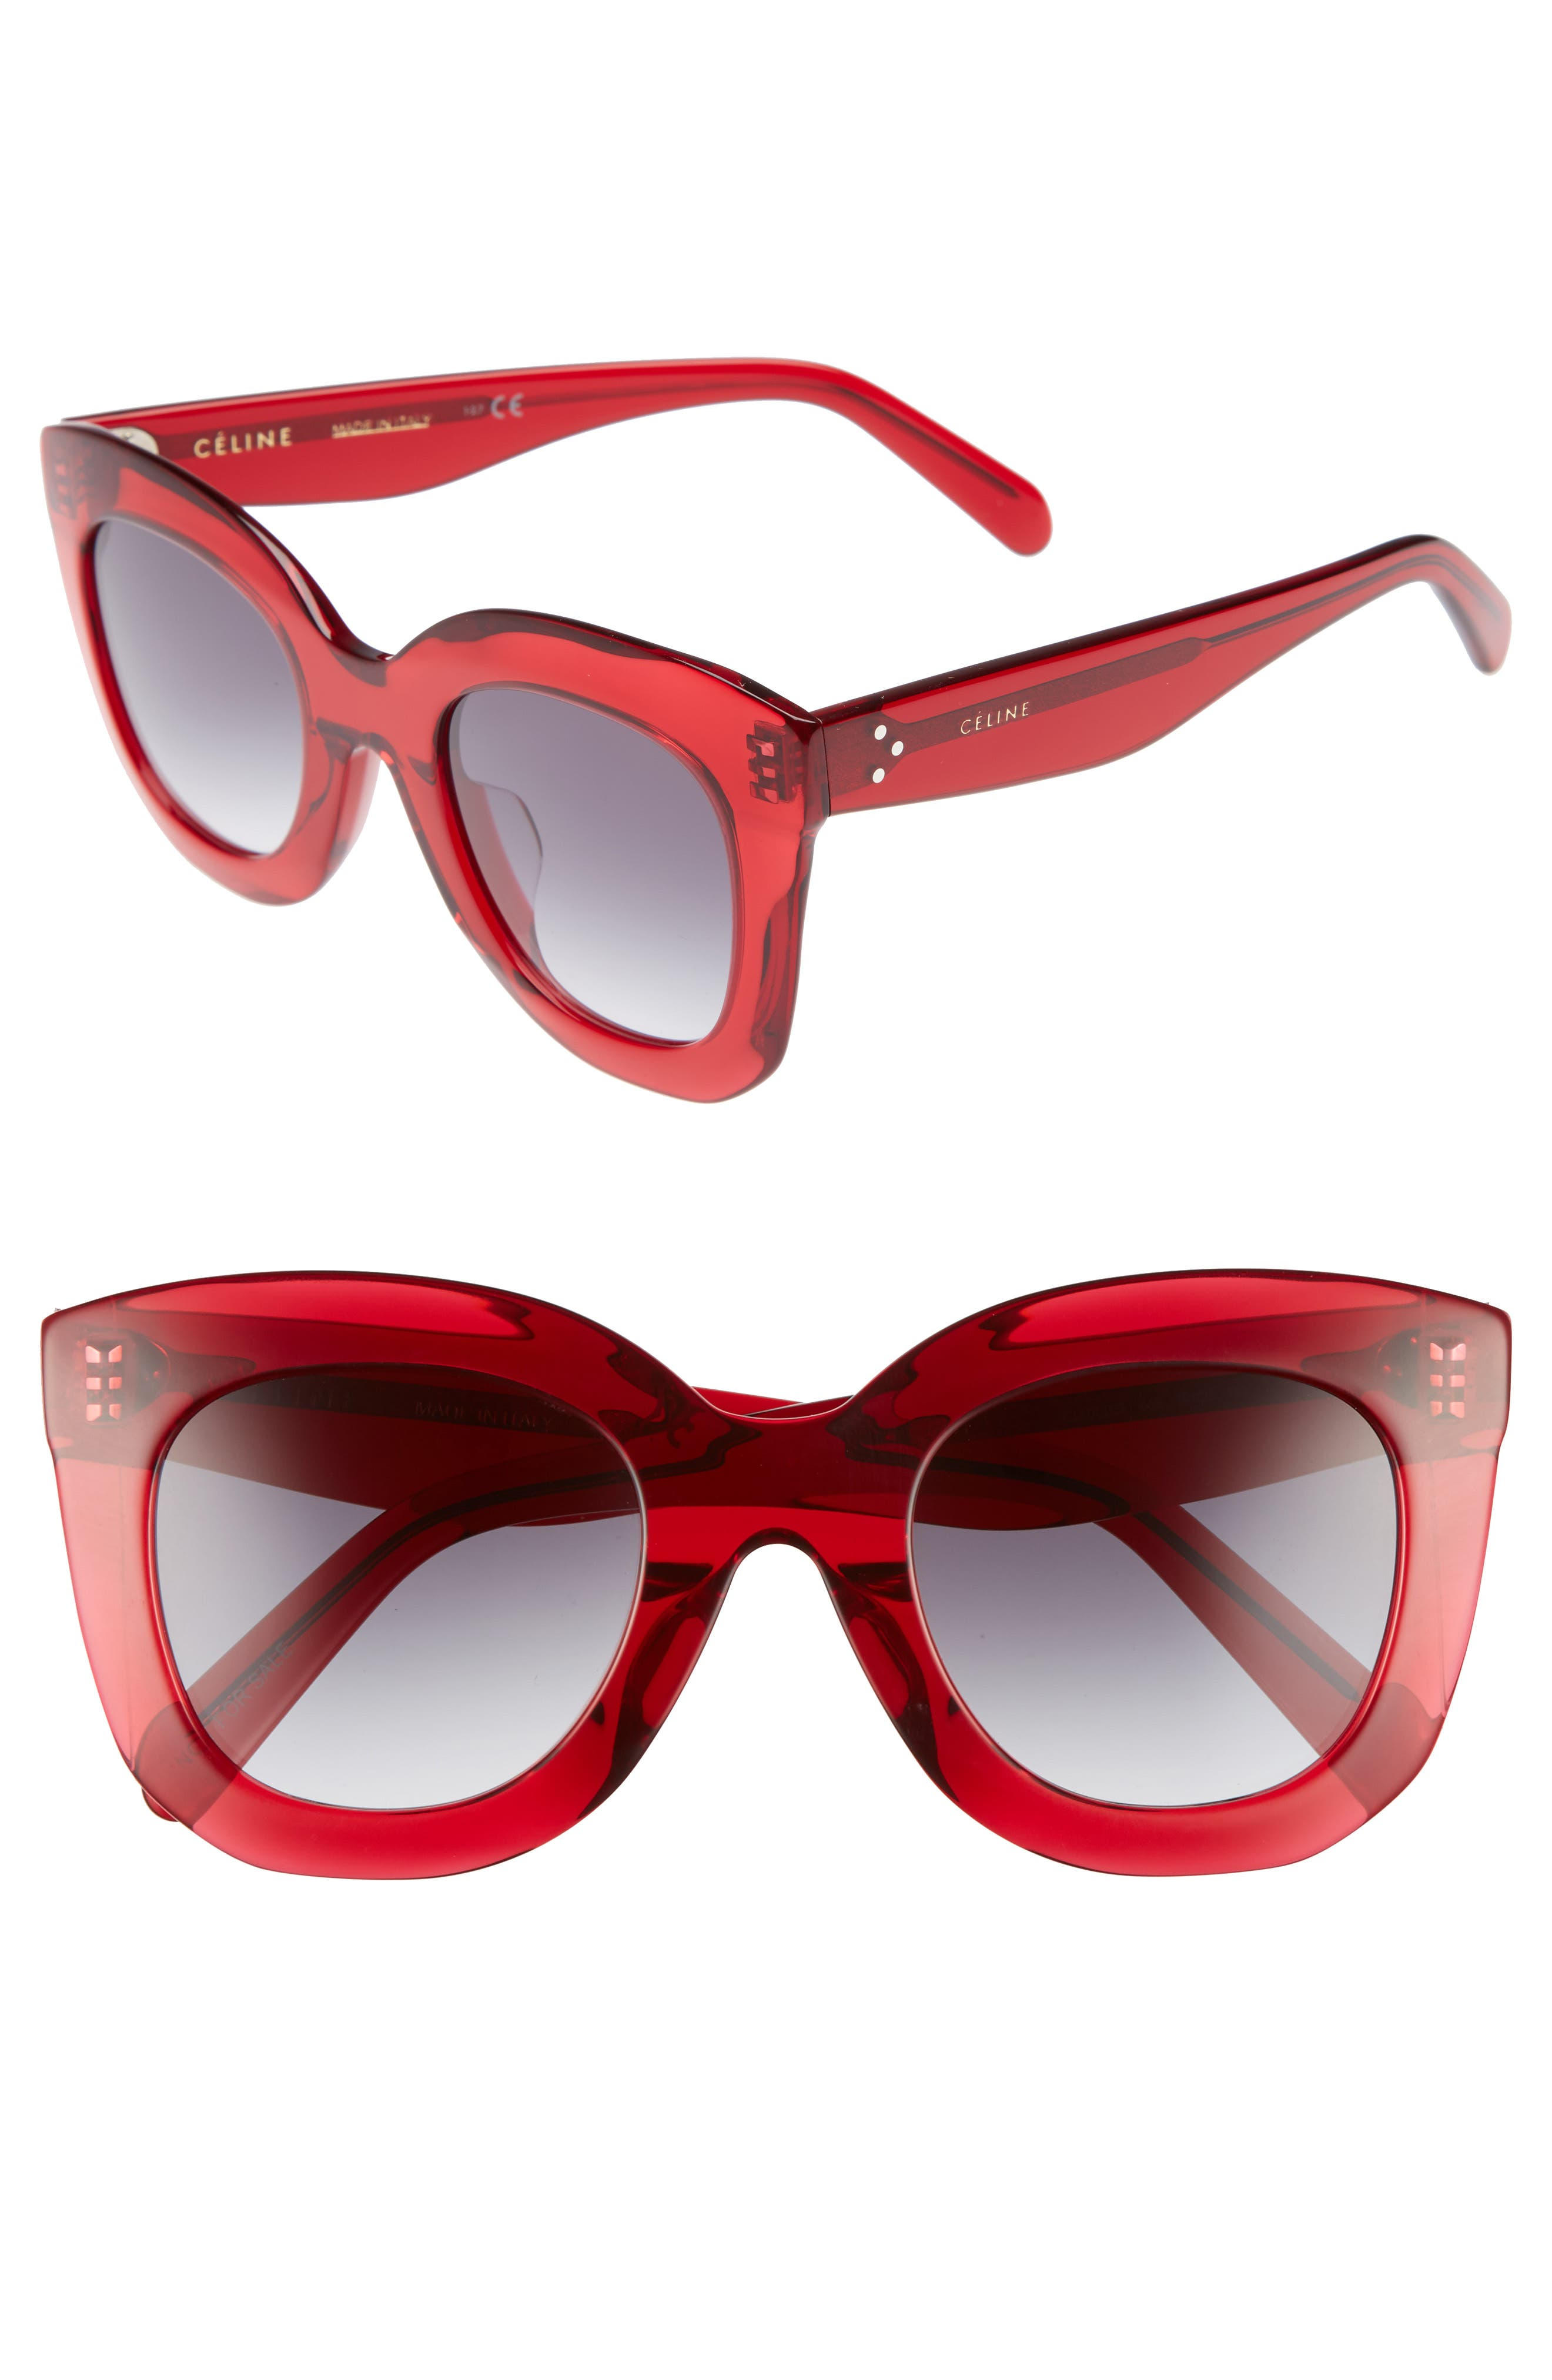 Special Fit 49mm Cat Eye Sunglasses,                             Main thumbnail 1, color,                             Red/ Smoke